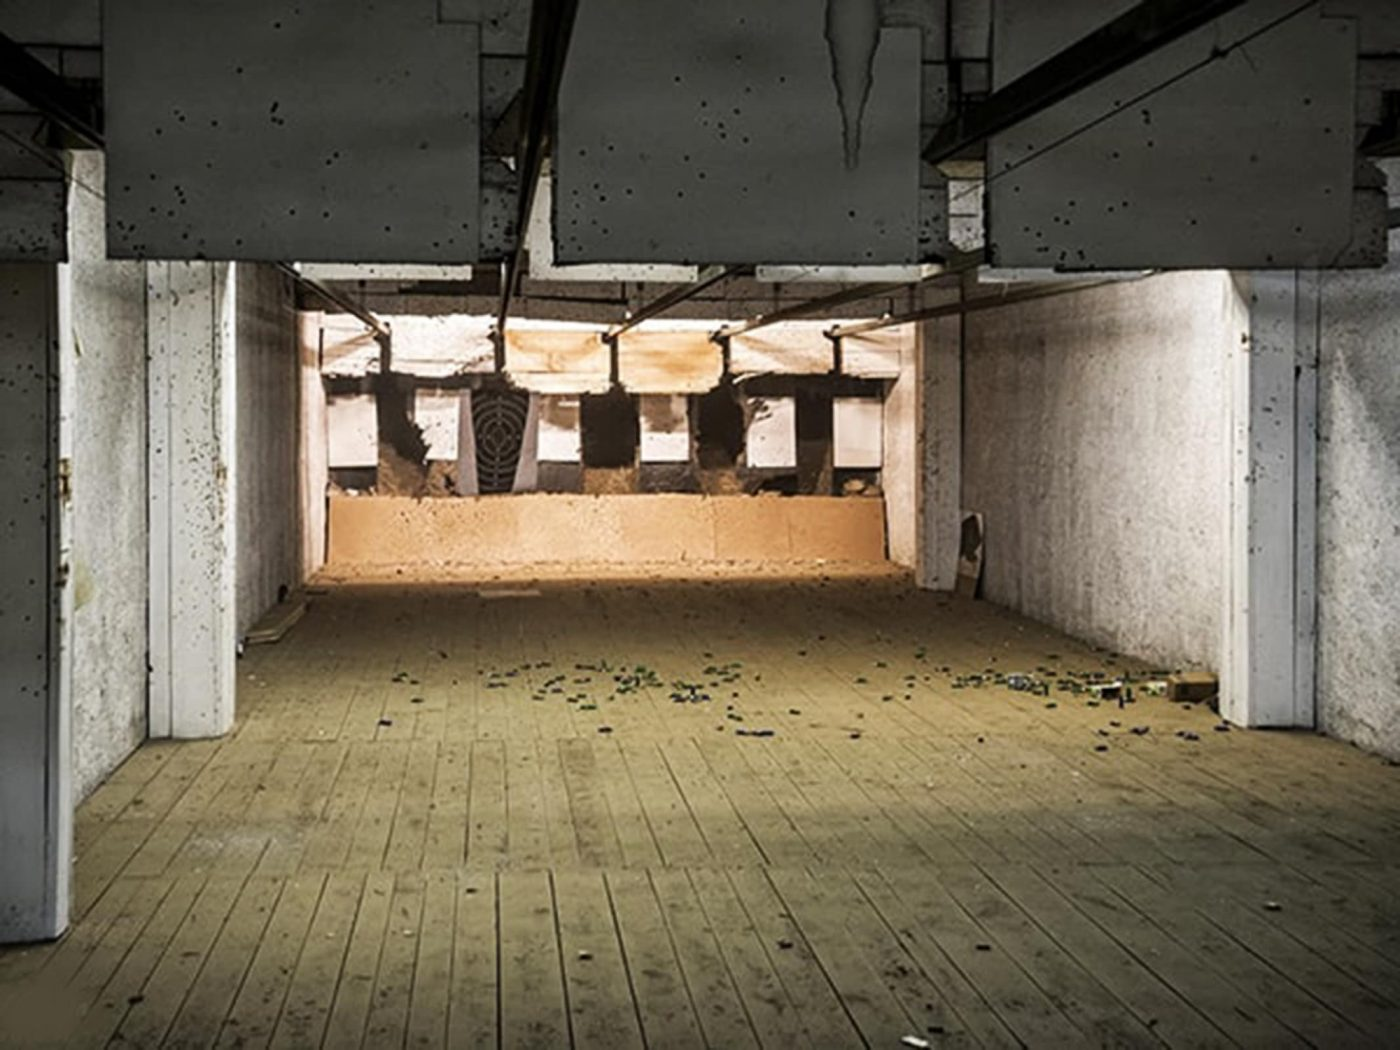 gun shooting package for bachelor parties in gdansk